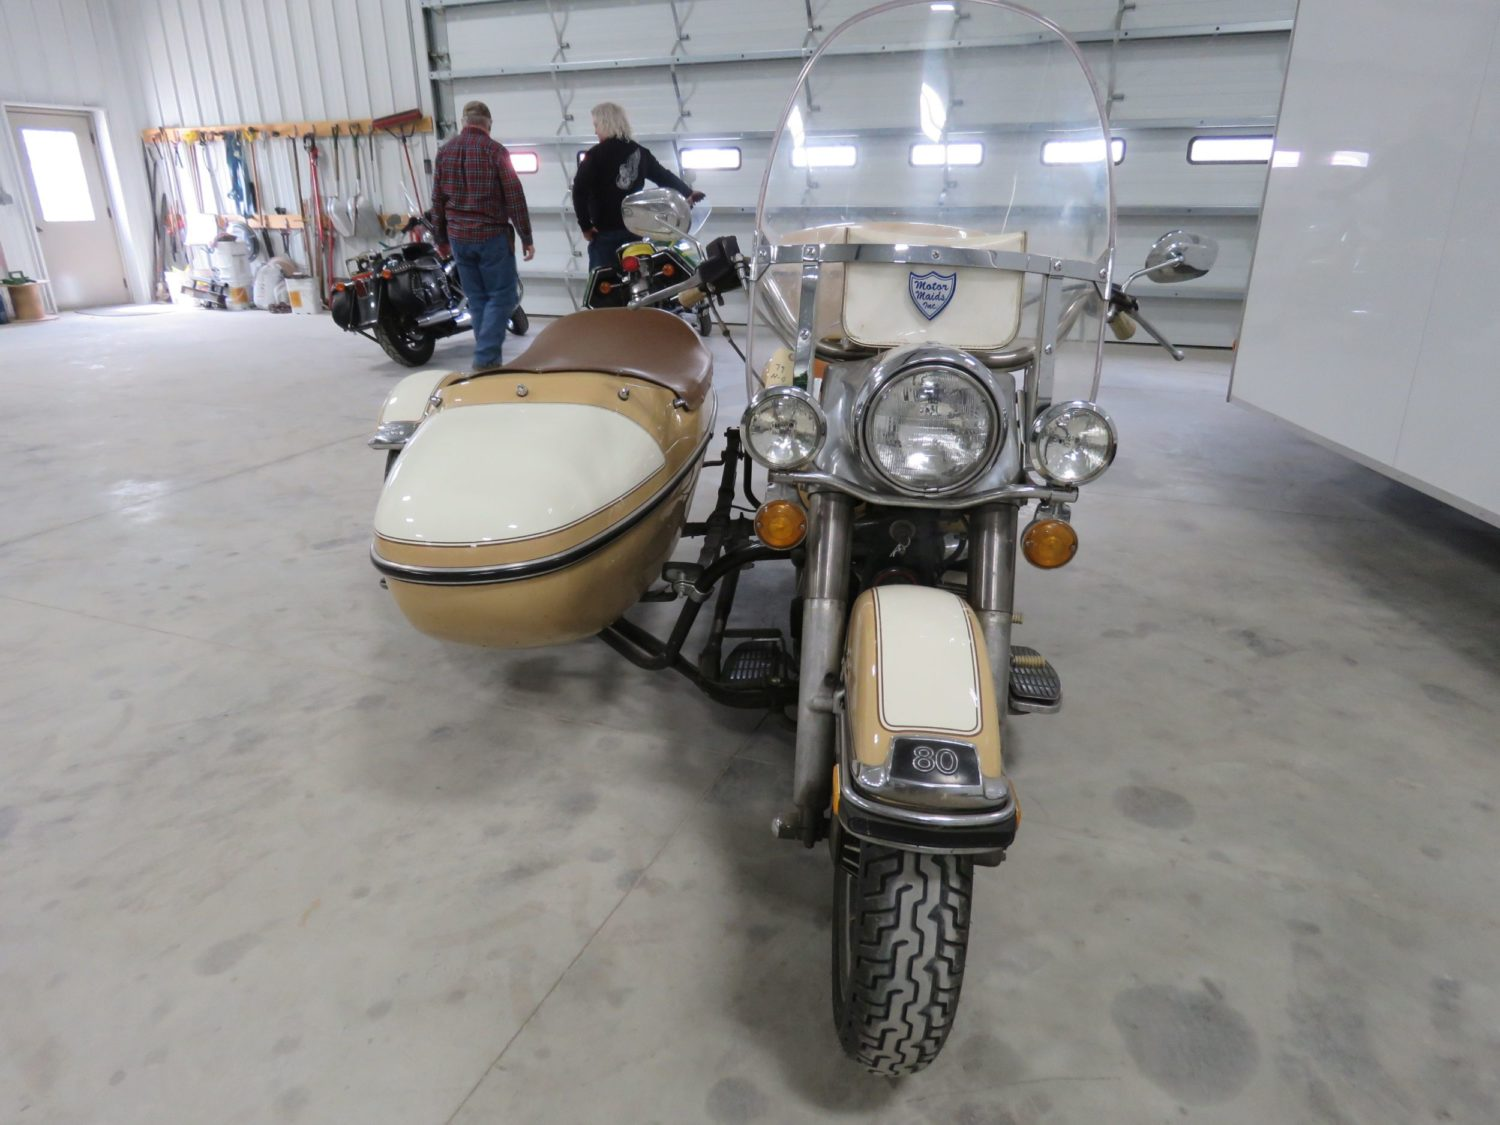 Vintage Motorcycles, & More! Kim Ferry Collection featured at Baxter Cycle Open House & Auction - image 4